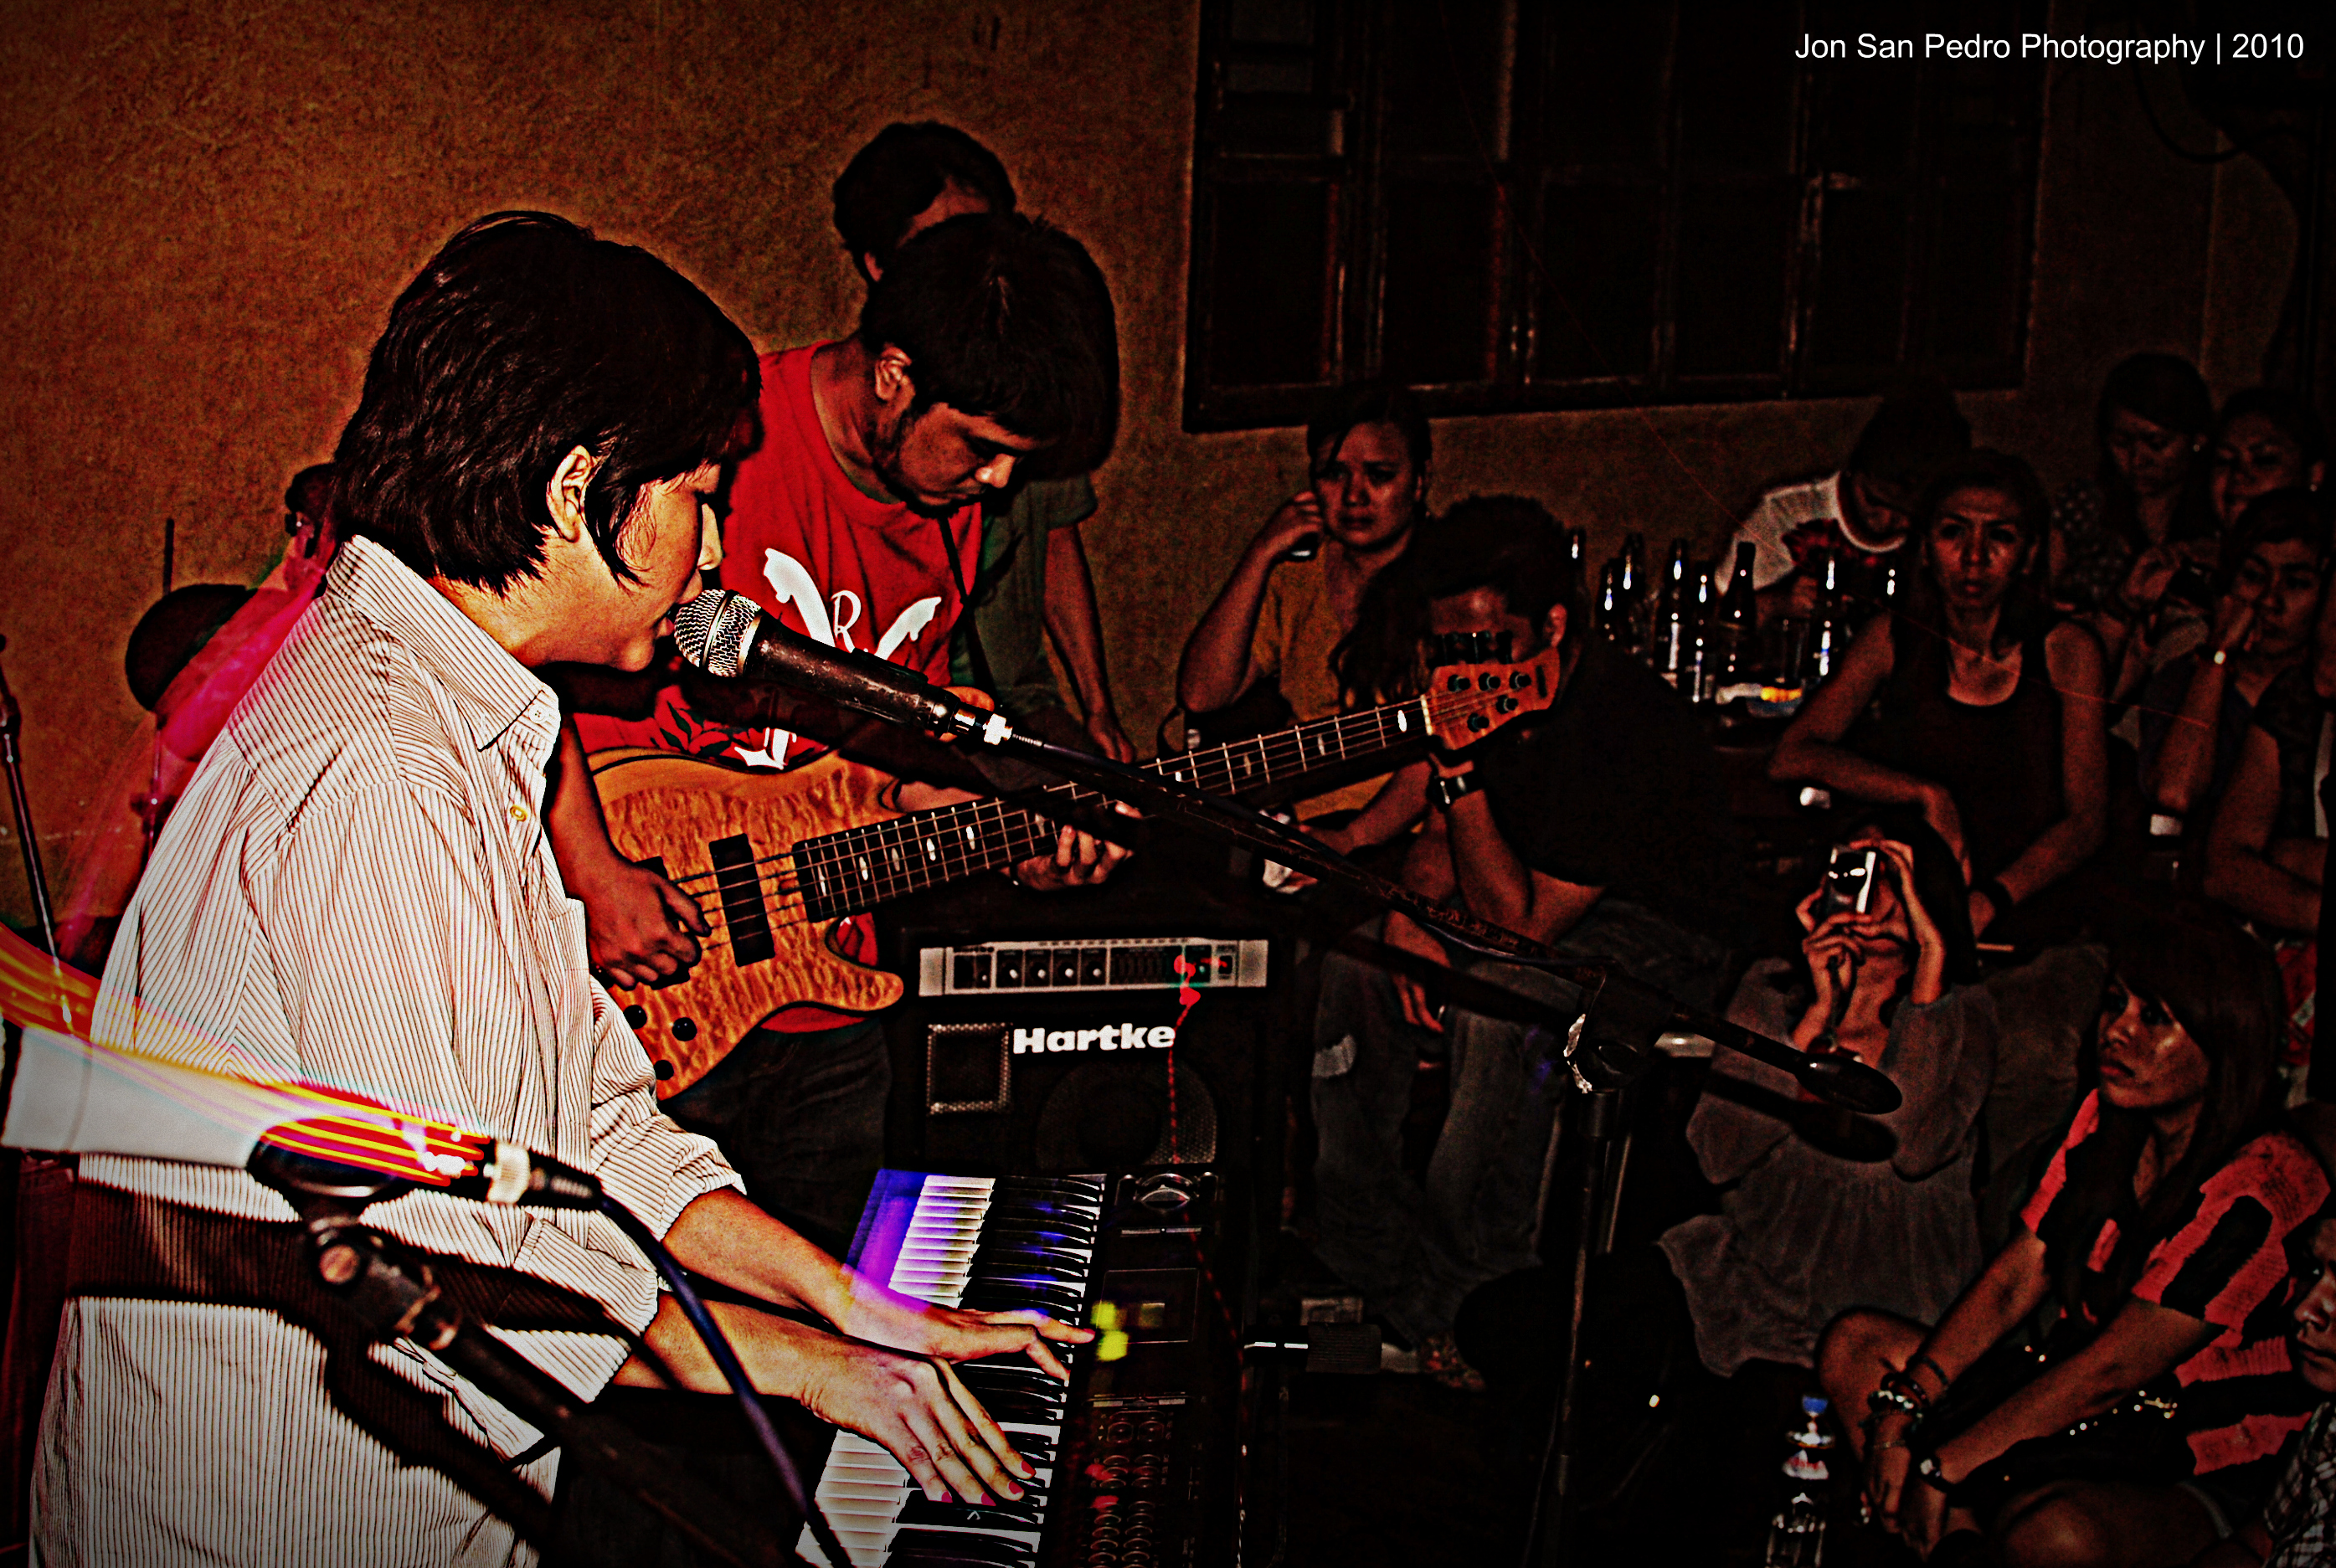 ARCHIVE: Oct 19, Explore the Indie Rock Scene in Manila Part 2